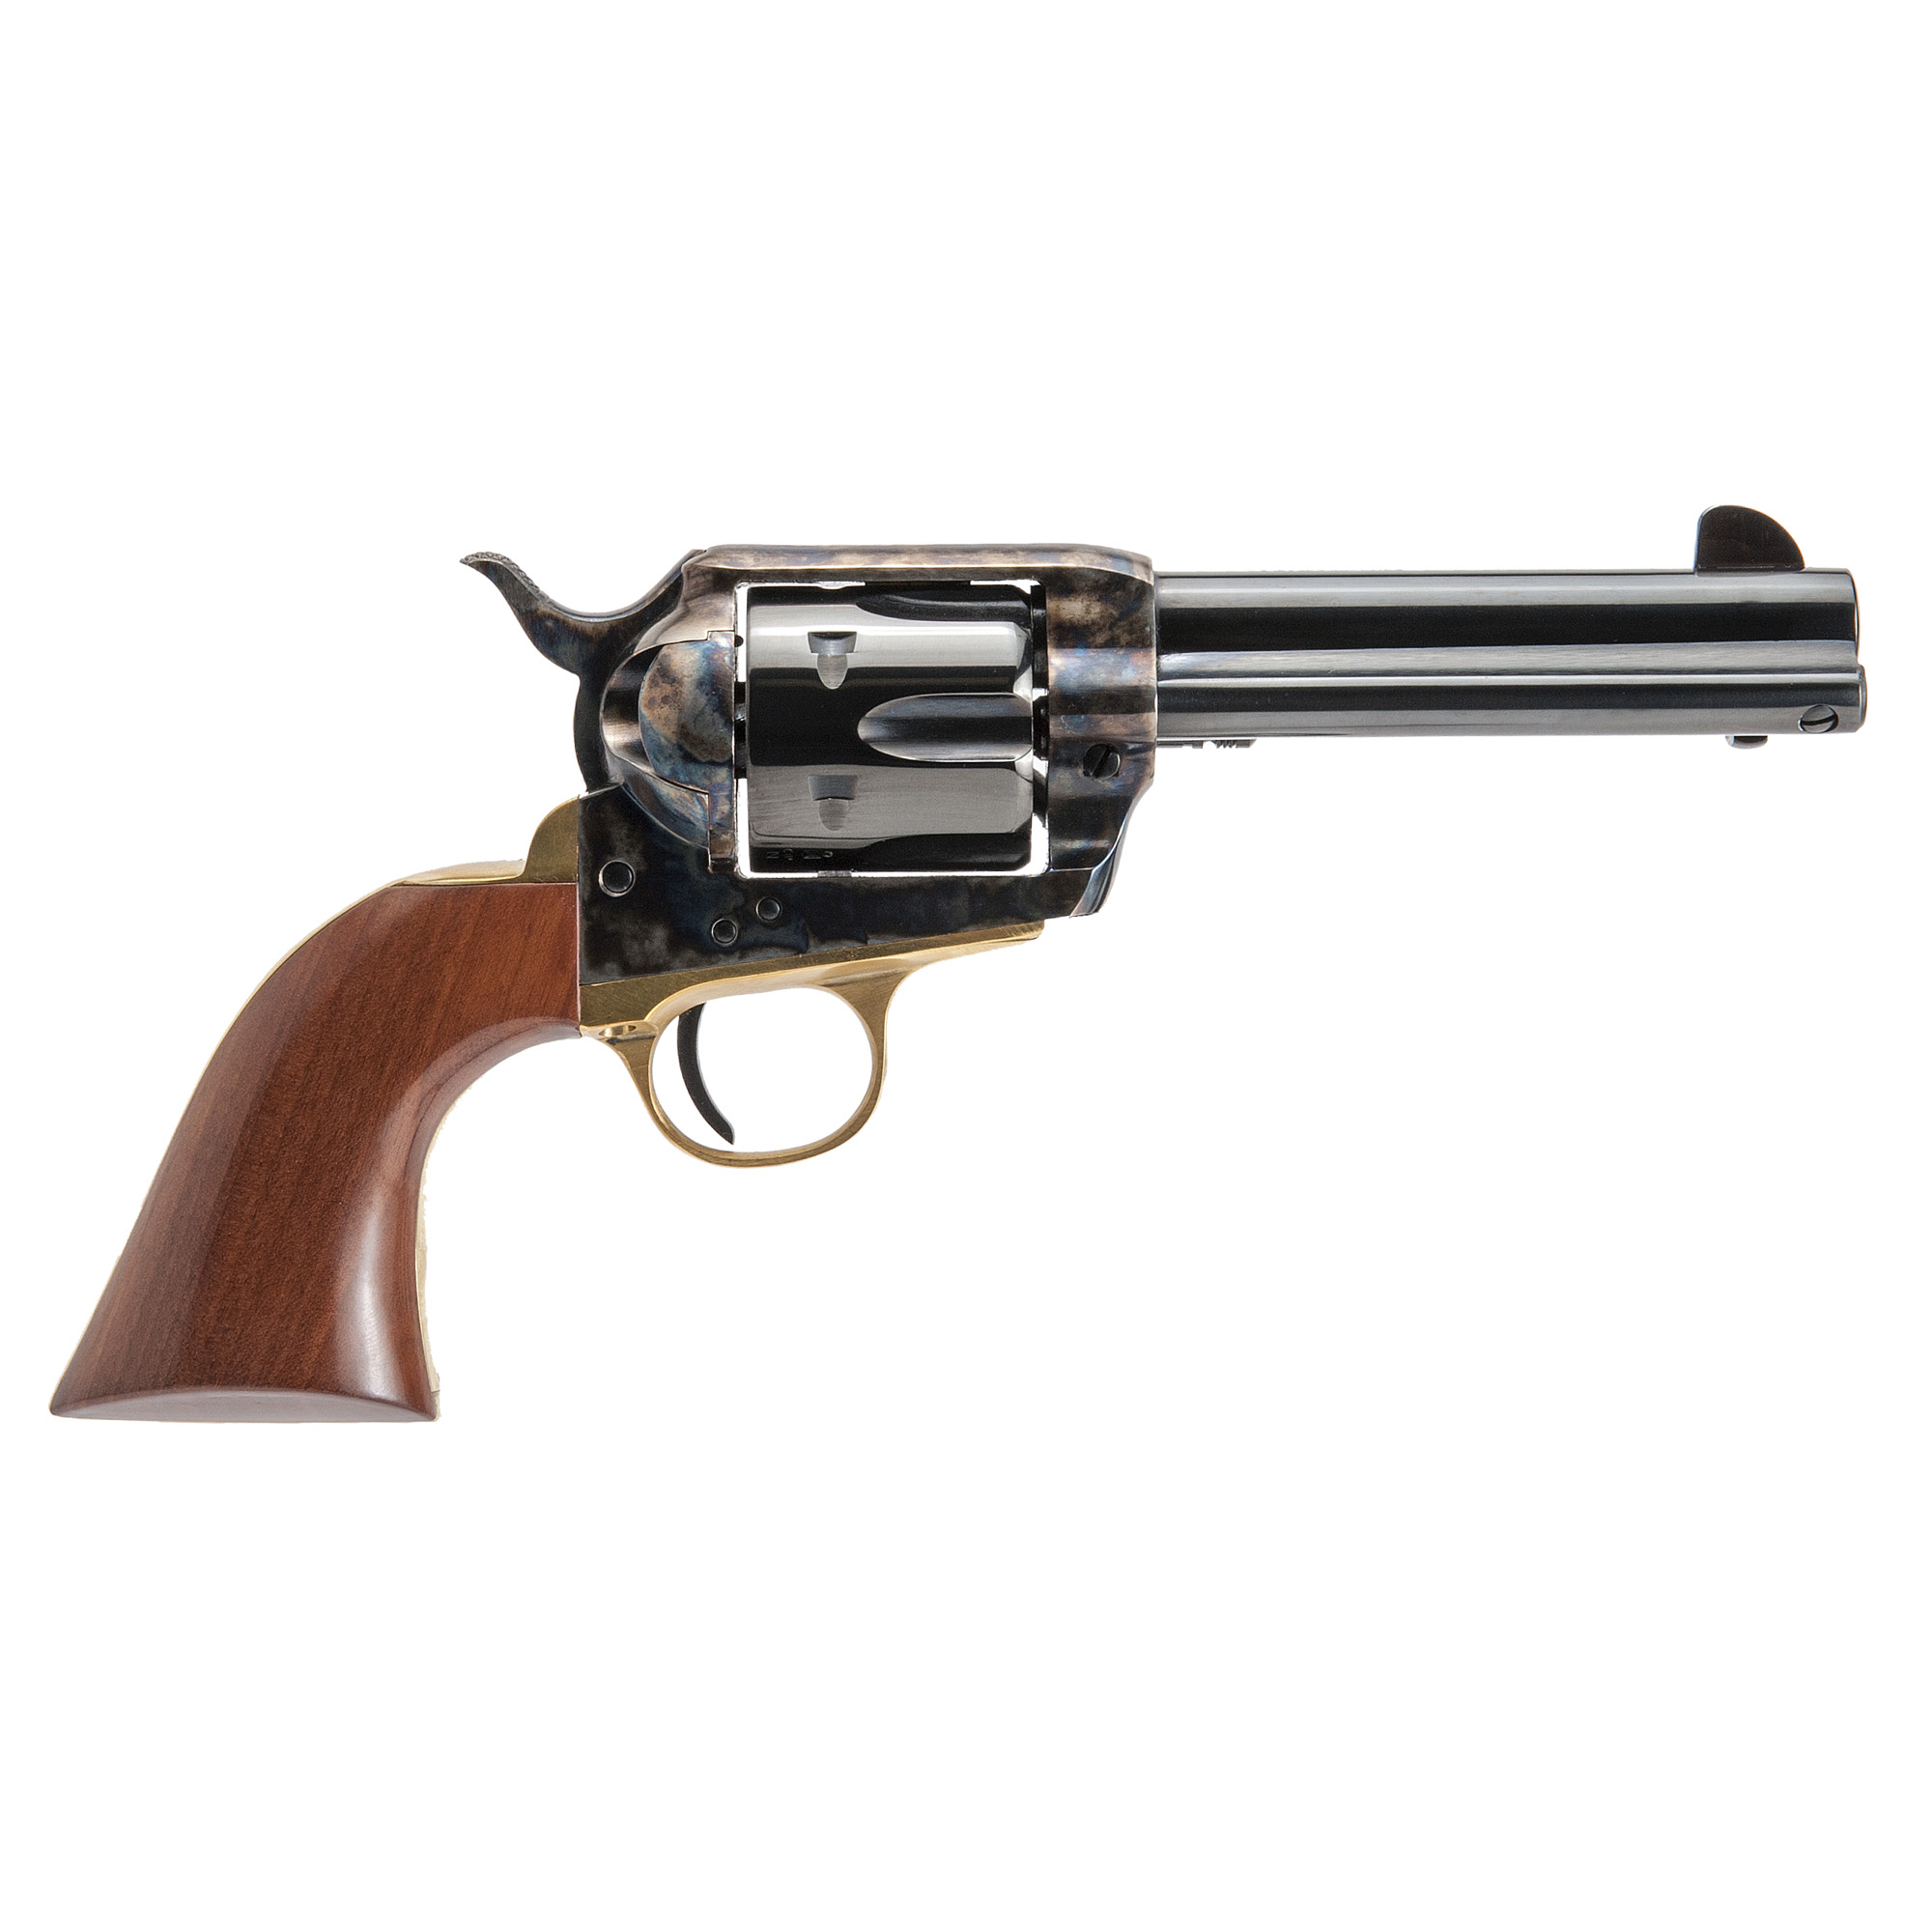 "The ""Pistolero"" Model .357/.38 Special features a 4 3/4"" blued barrel"" color case hardened frame and smooth walnut grips."